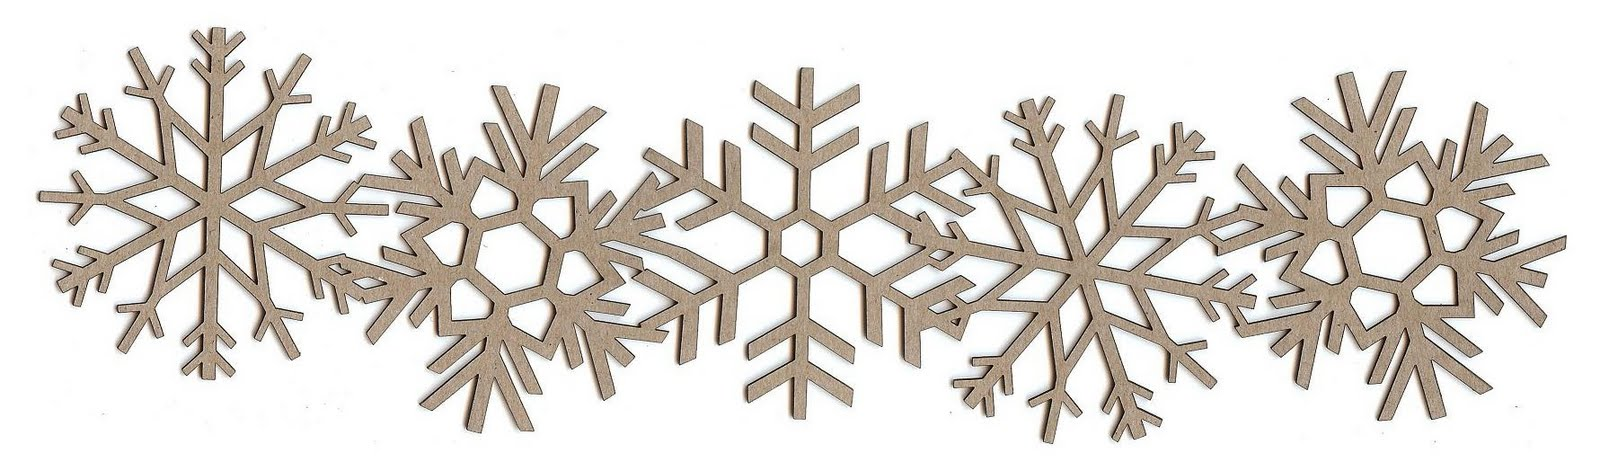 Displaying snowflake border clipart for your project.